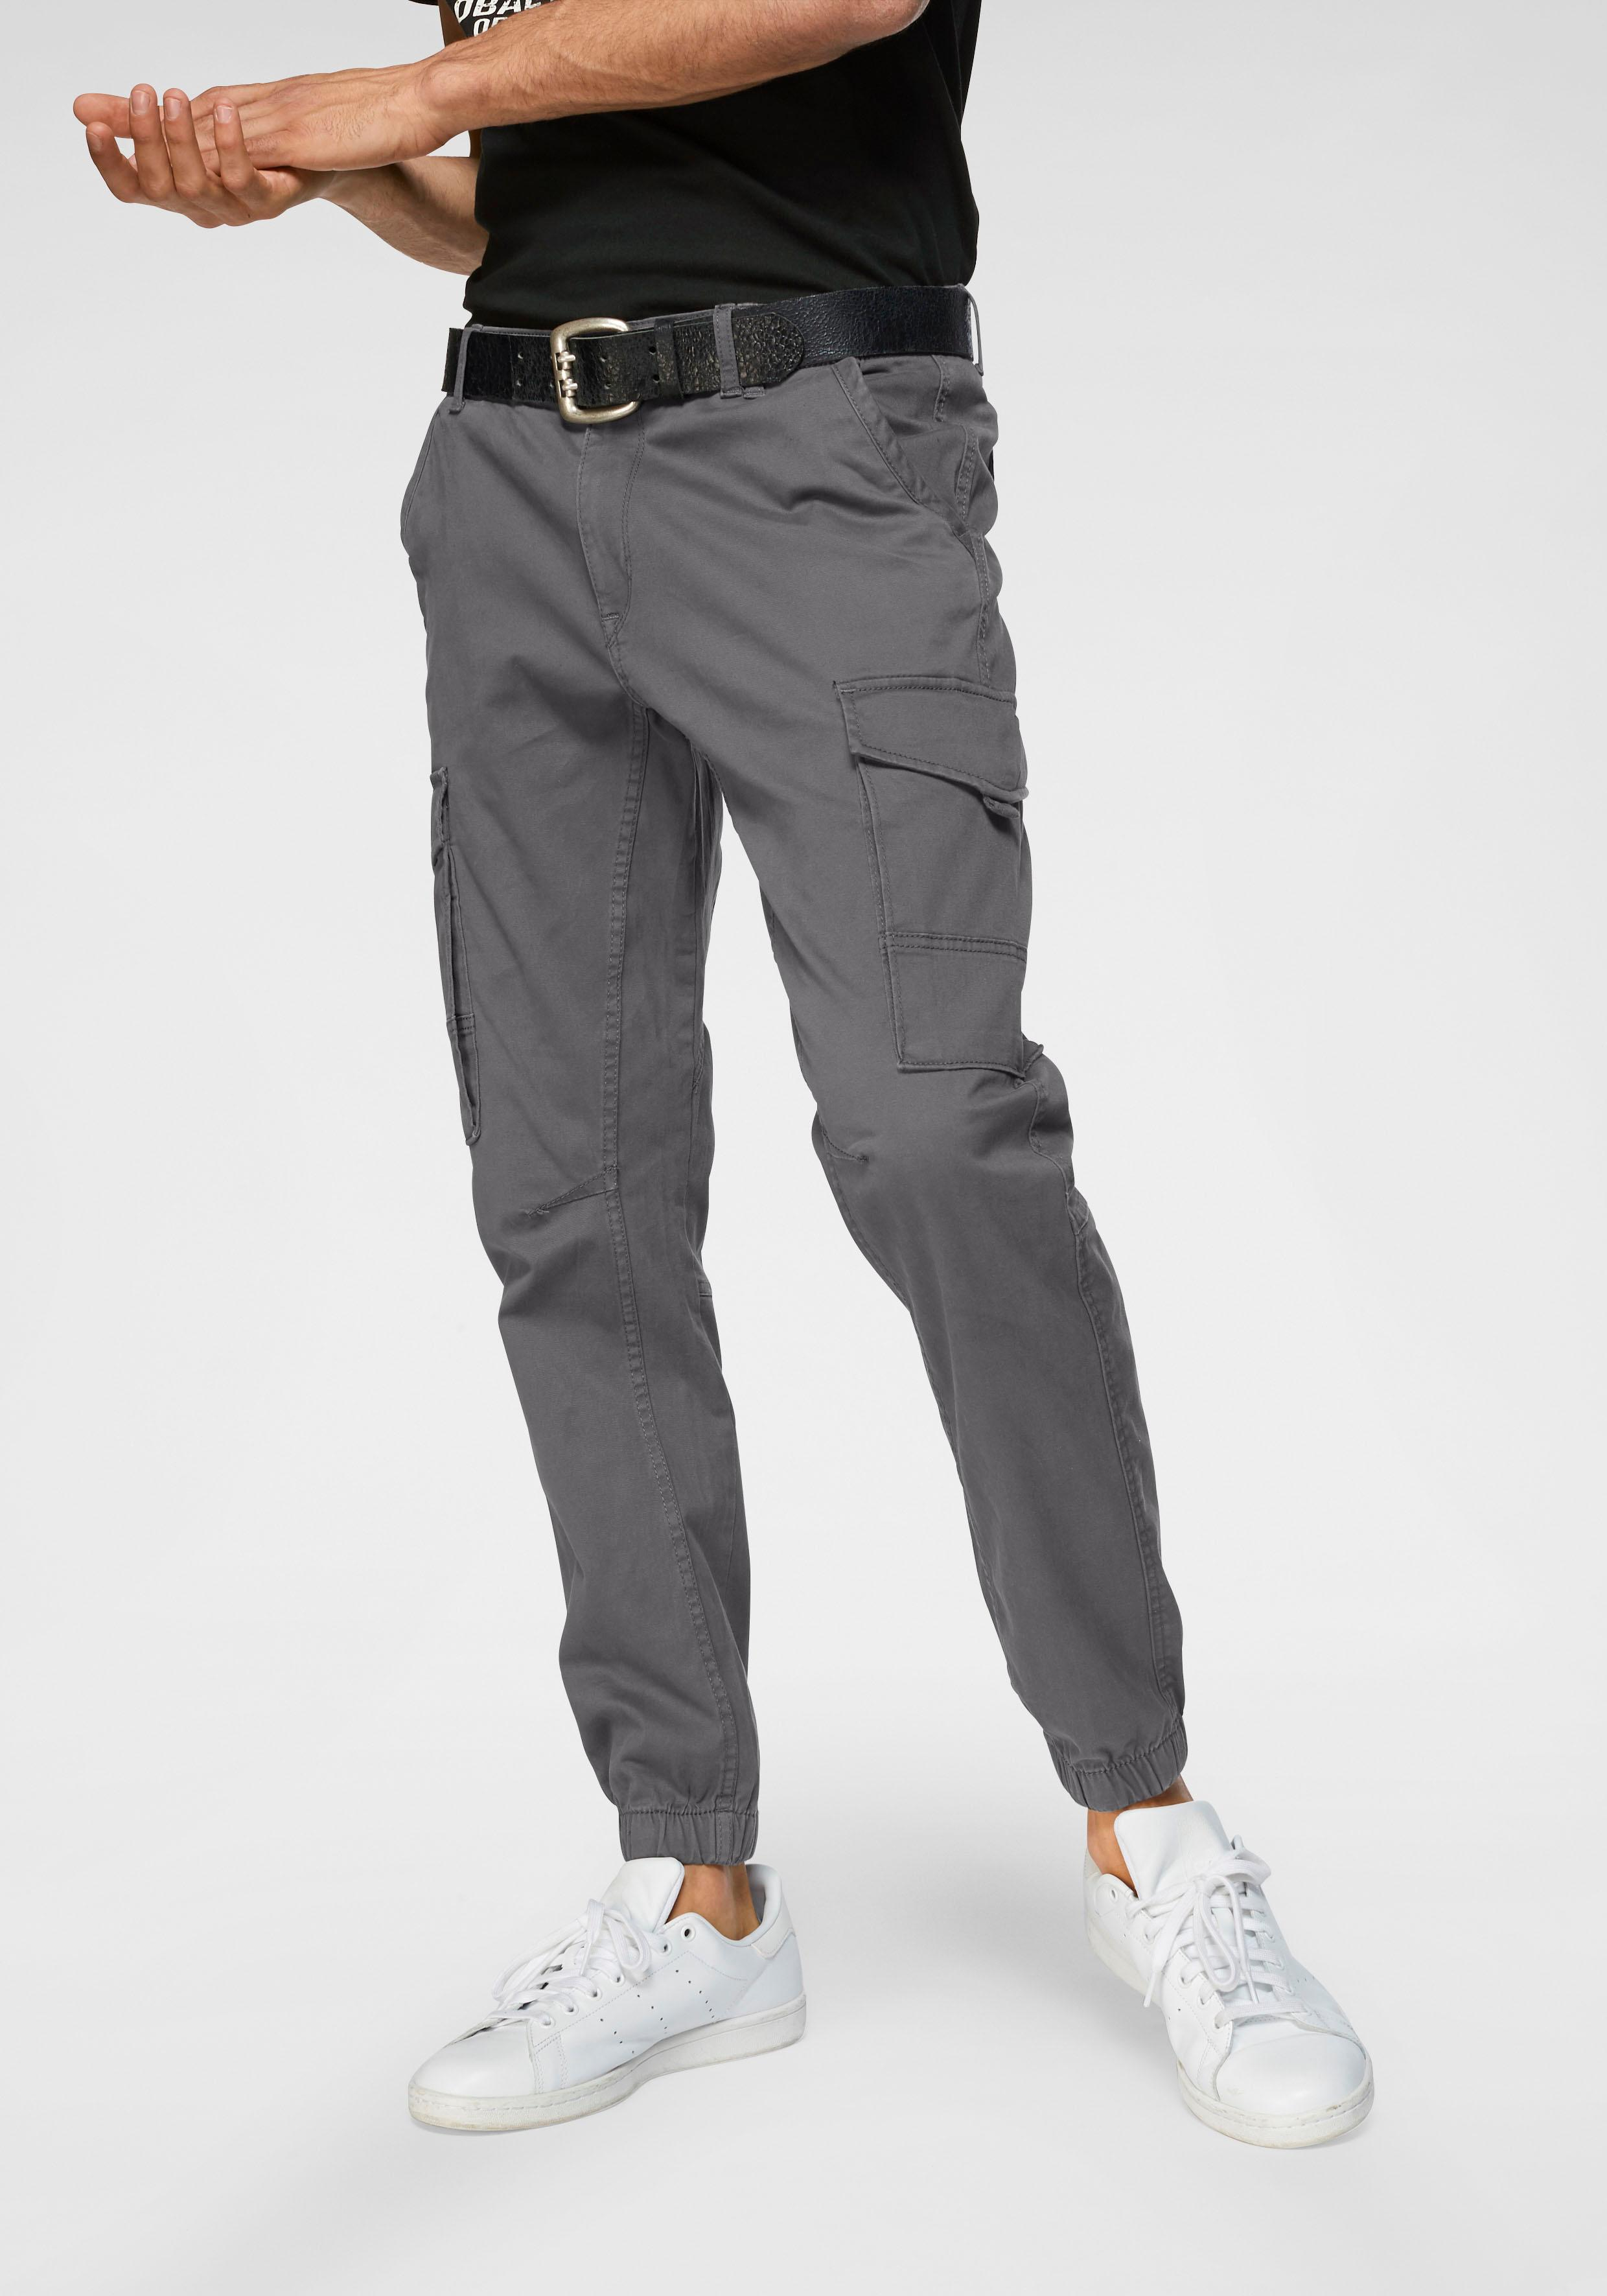 Jack & Jones Cargohose Paul Flake | Bekleidung > Hosen > Cargohosen | jack & jones